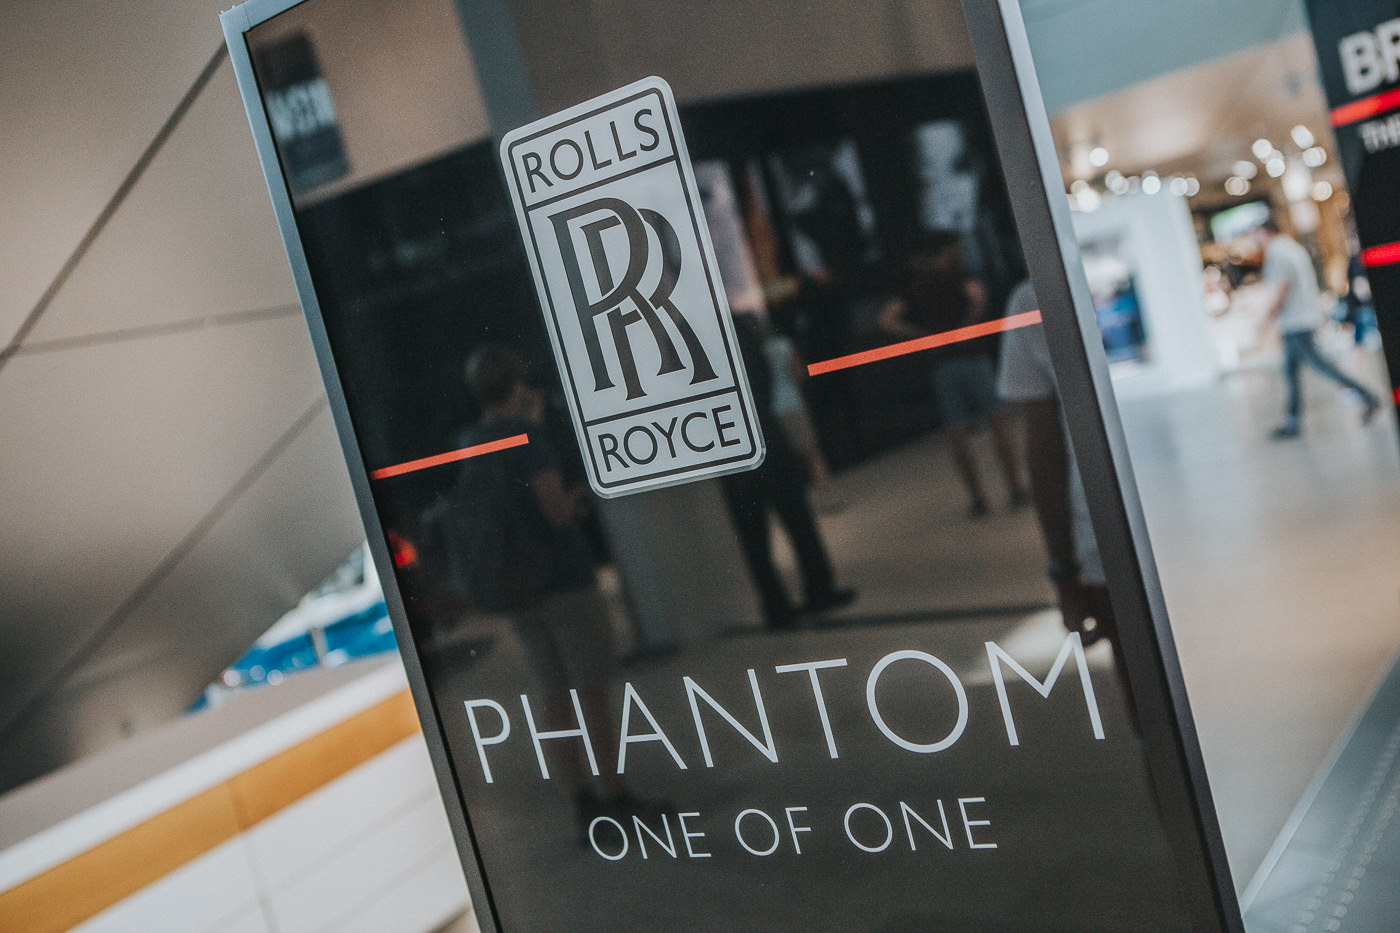 Rolls Royce Phamtom Logo - High End cars